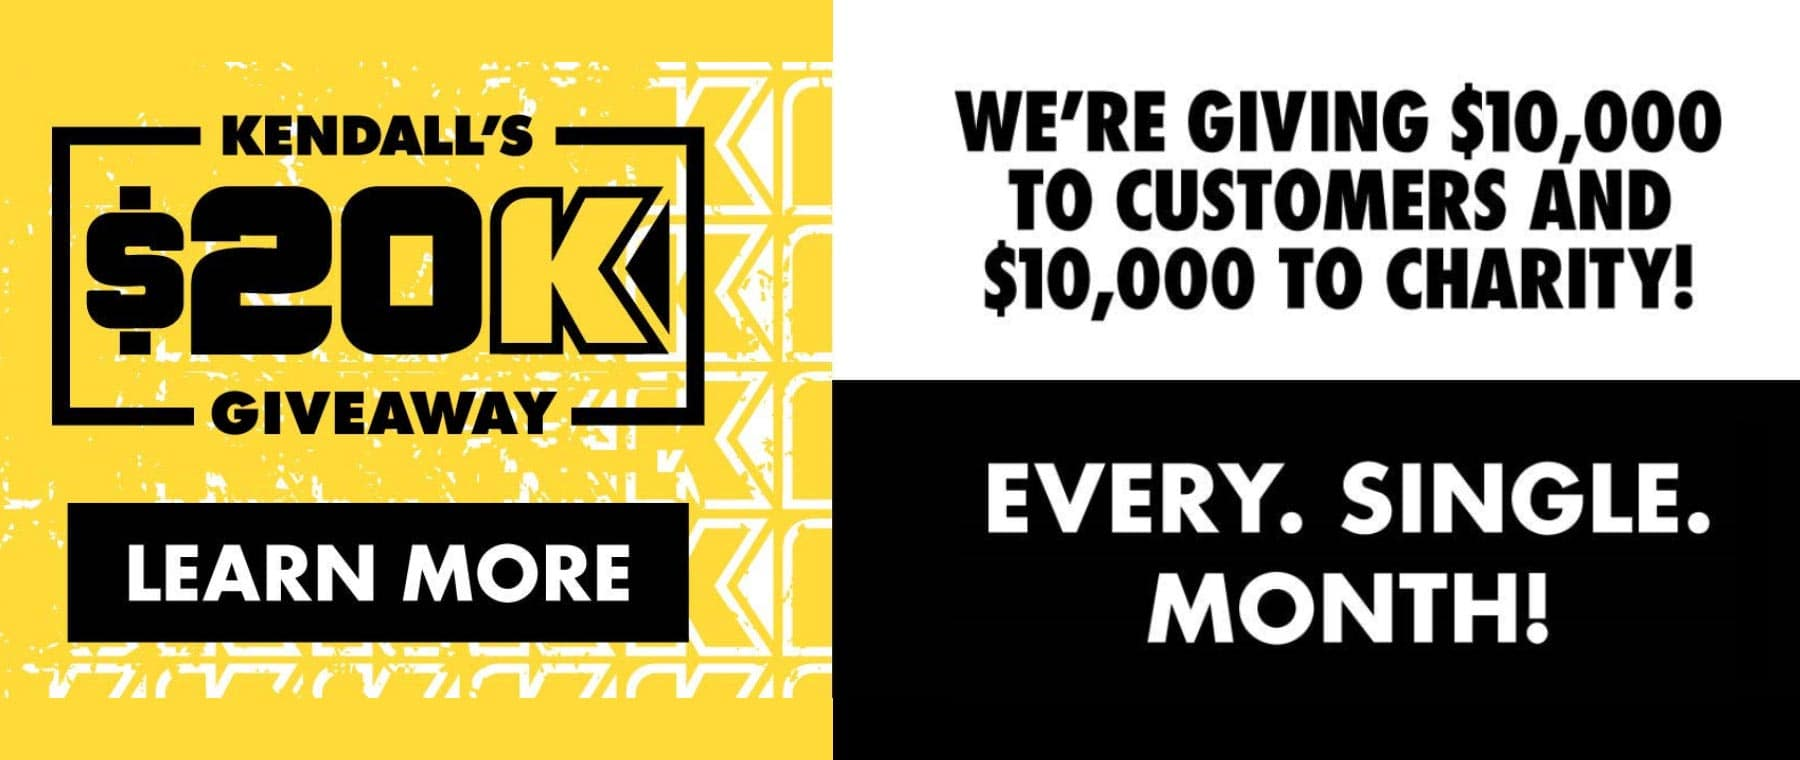 kendall $20k giveaway